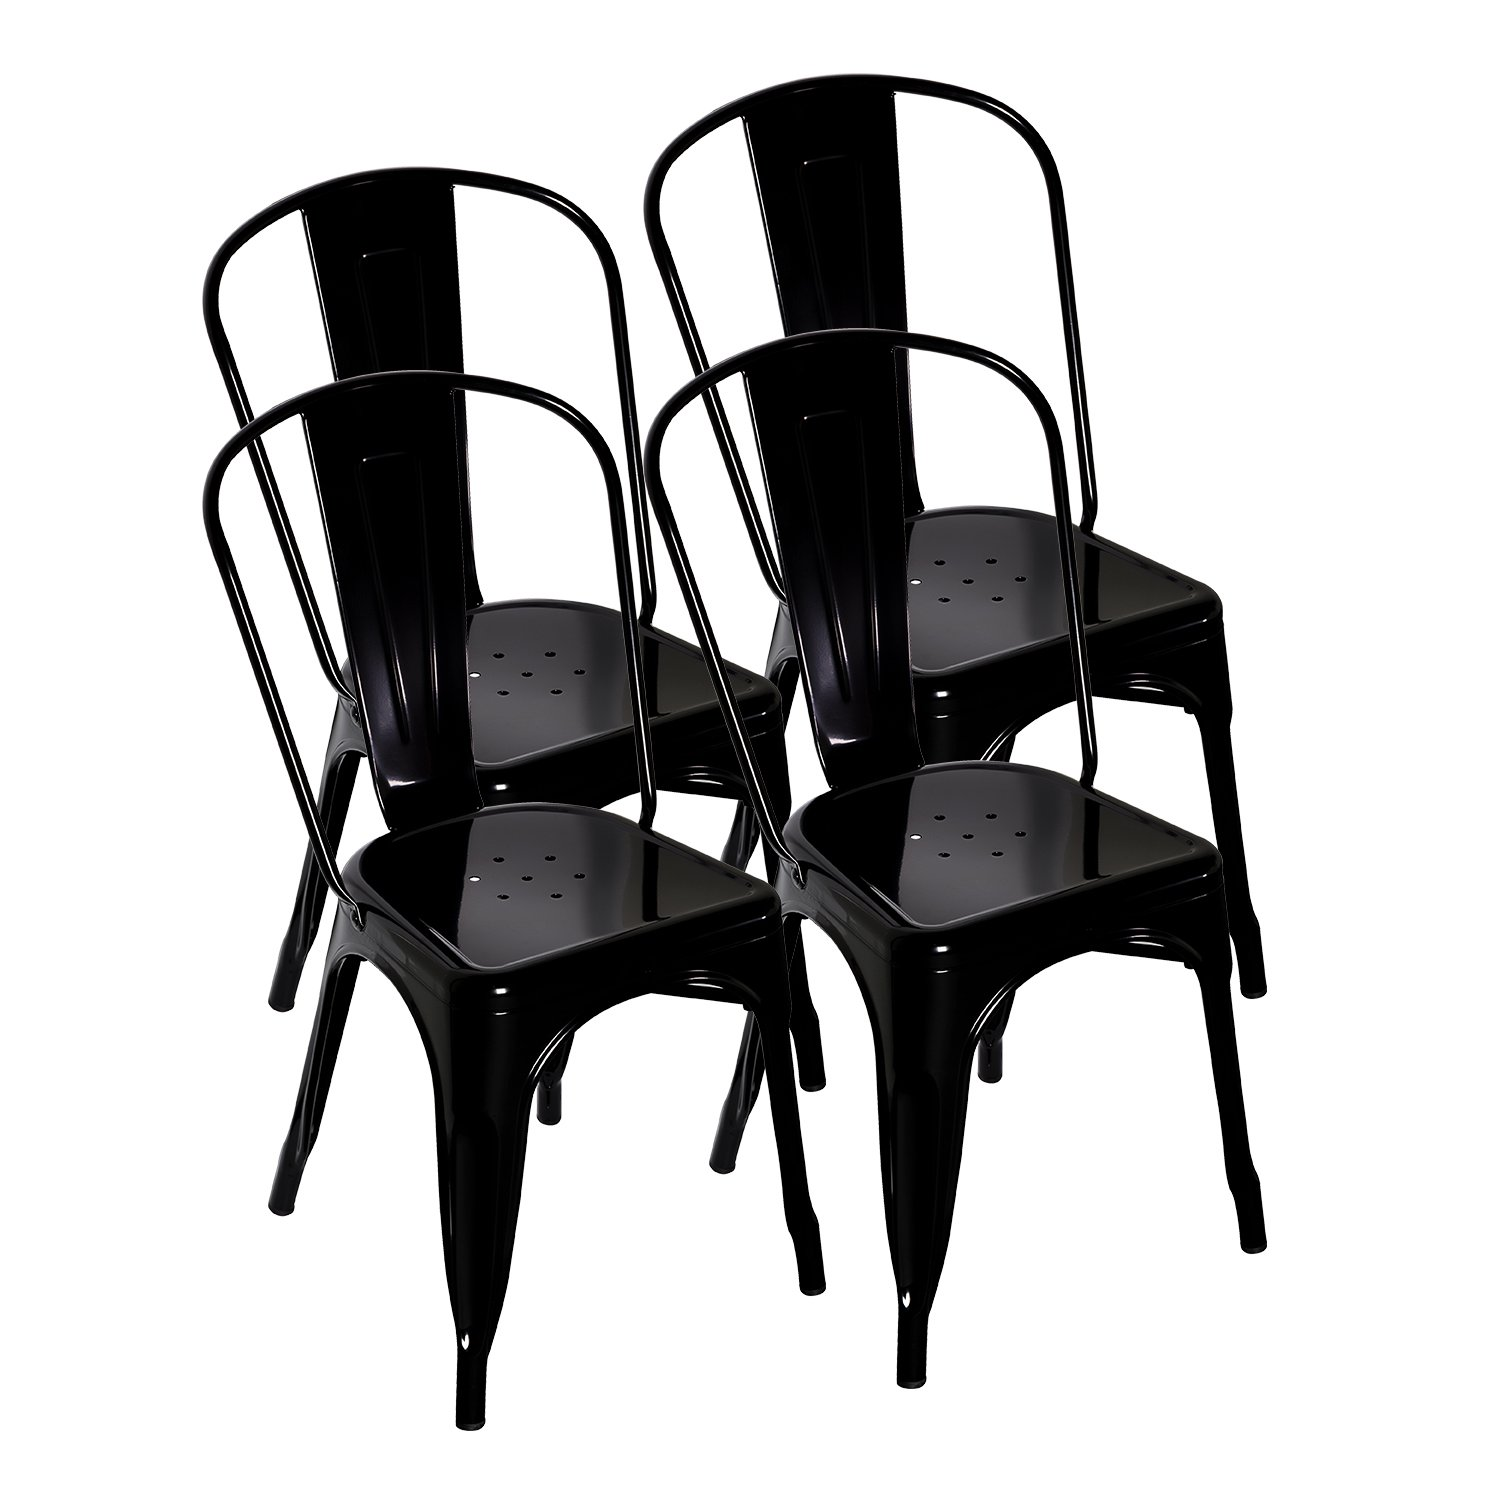 LCH Metal Industrial Stackable Dining Bistro Cafe Side Chairs, Set of 4, Black